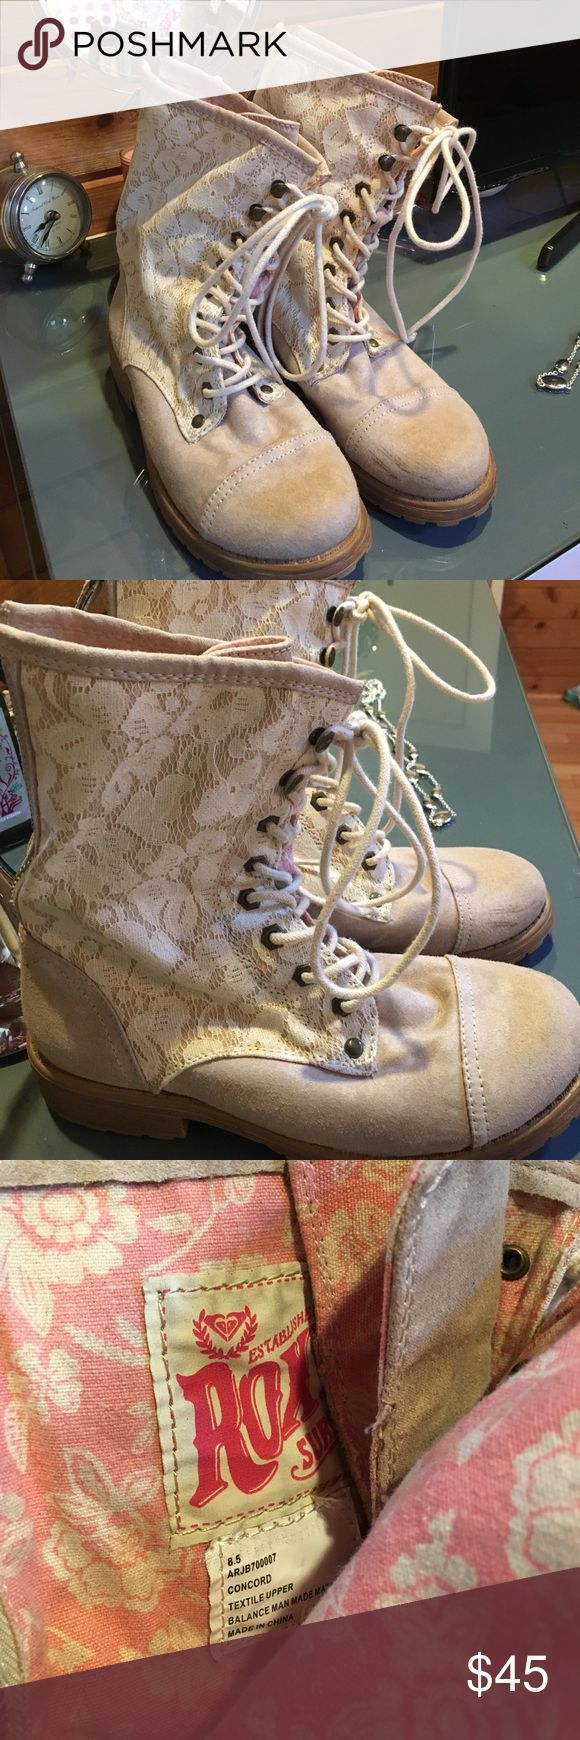 Roxy Lace Combat Boots Roxy white lace combat boot. Laces up front and zipper in back. Worn twice only. True to size. Excellent condition. One small mark shown in photo. Otherwise perfect. Reasonable offers considered. Roxy Shoes Combat & Moto Boots